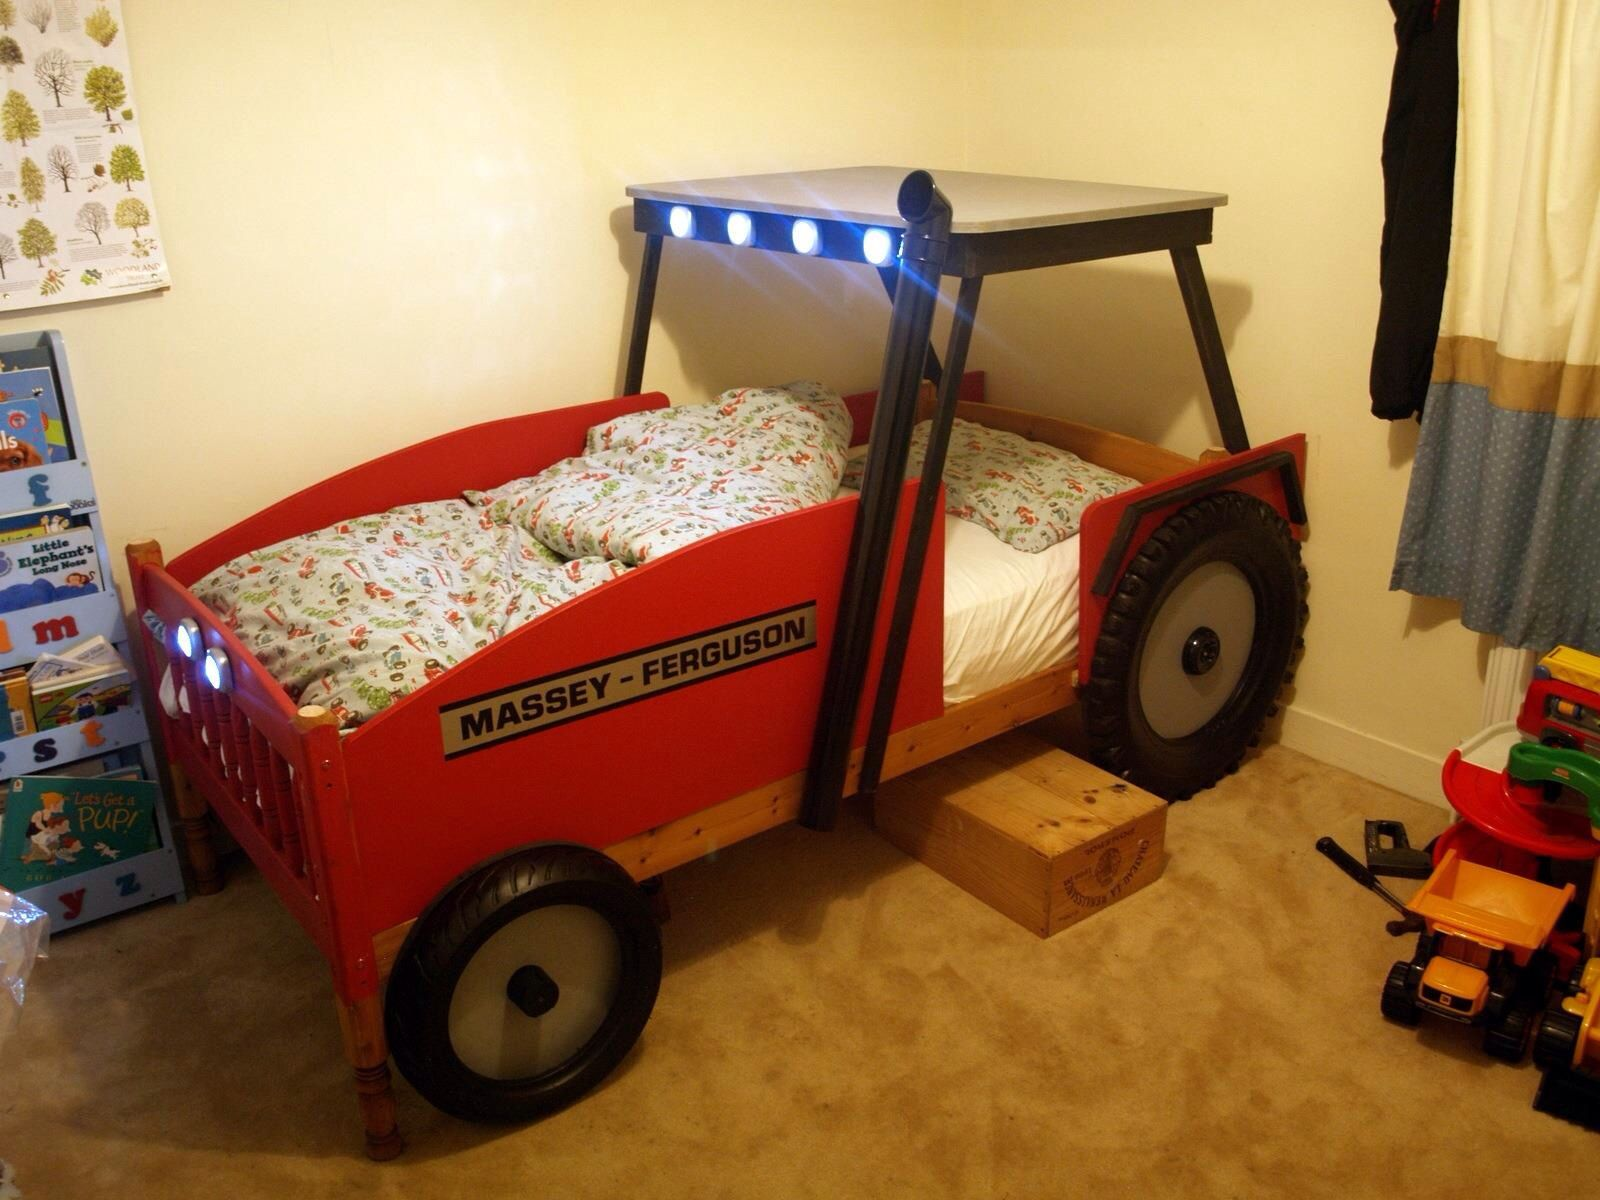 Diy tractor bed for 3 year old boy bedroom ideas - Bedroom ideas for 3 year old boy ...